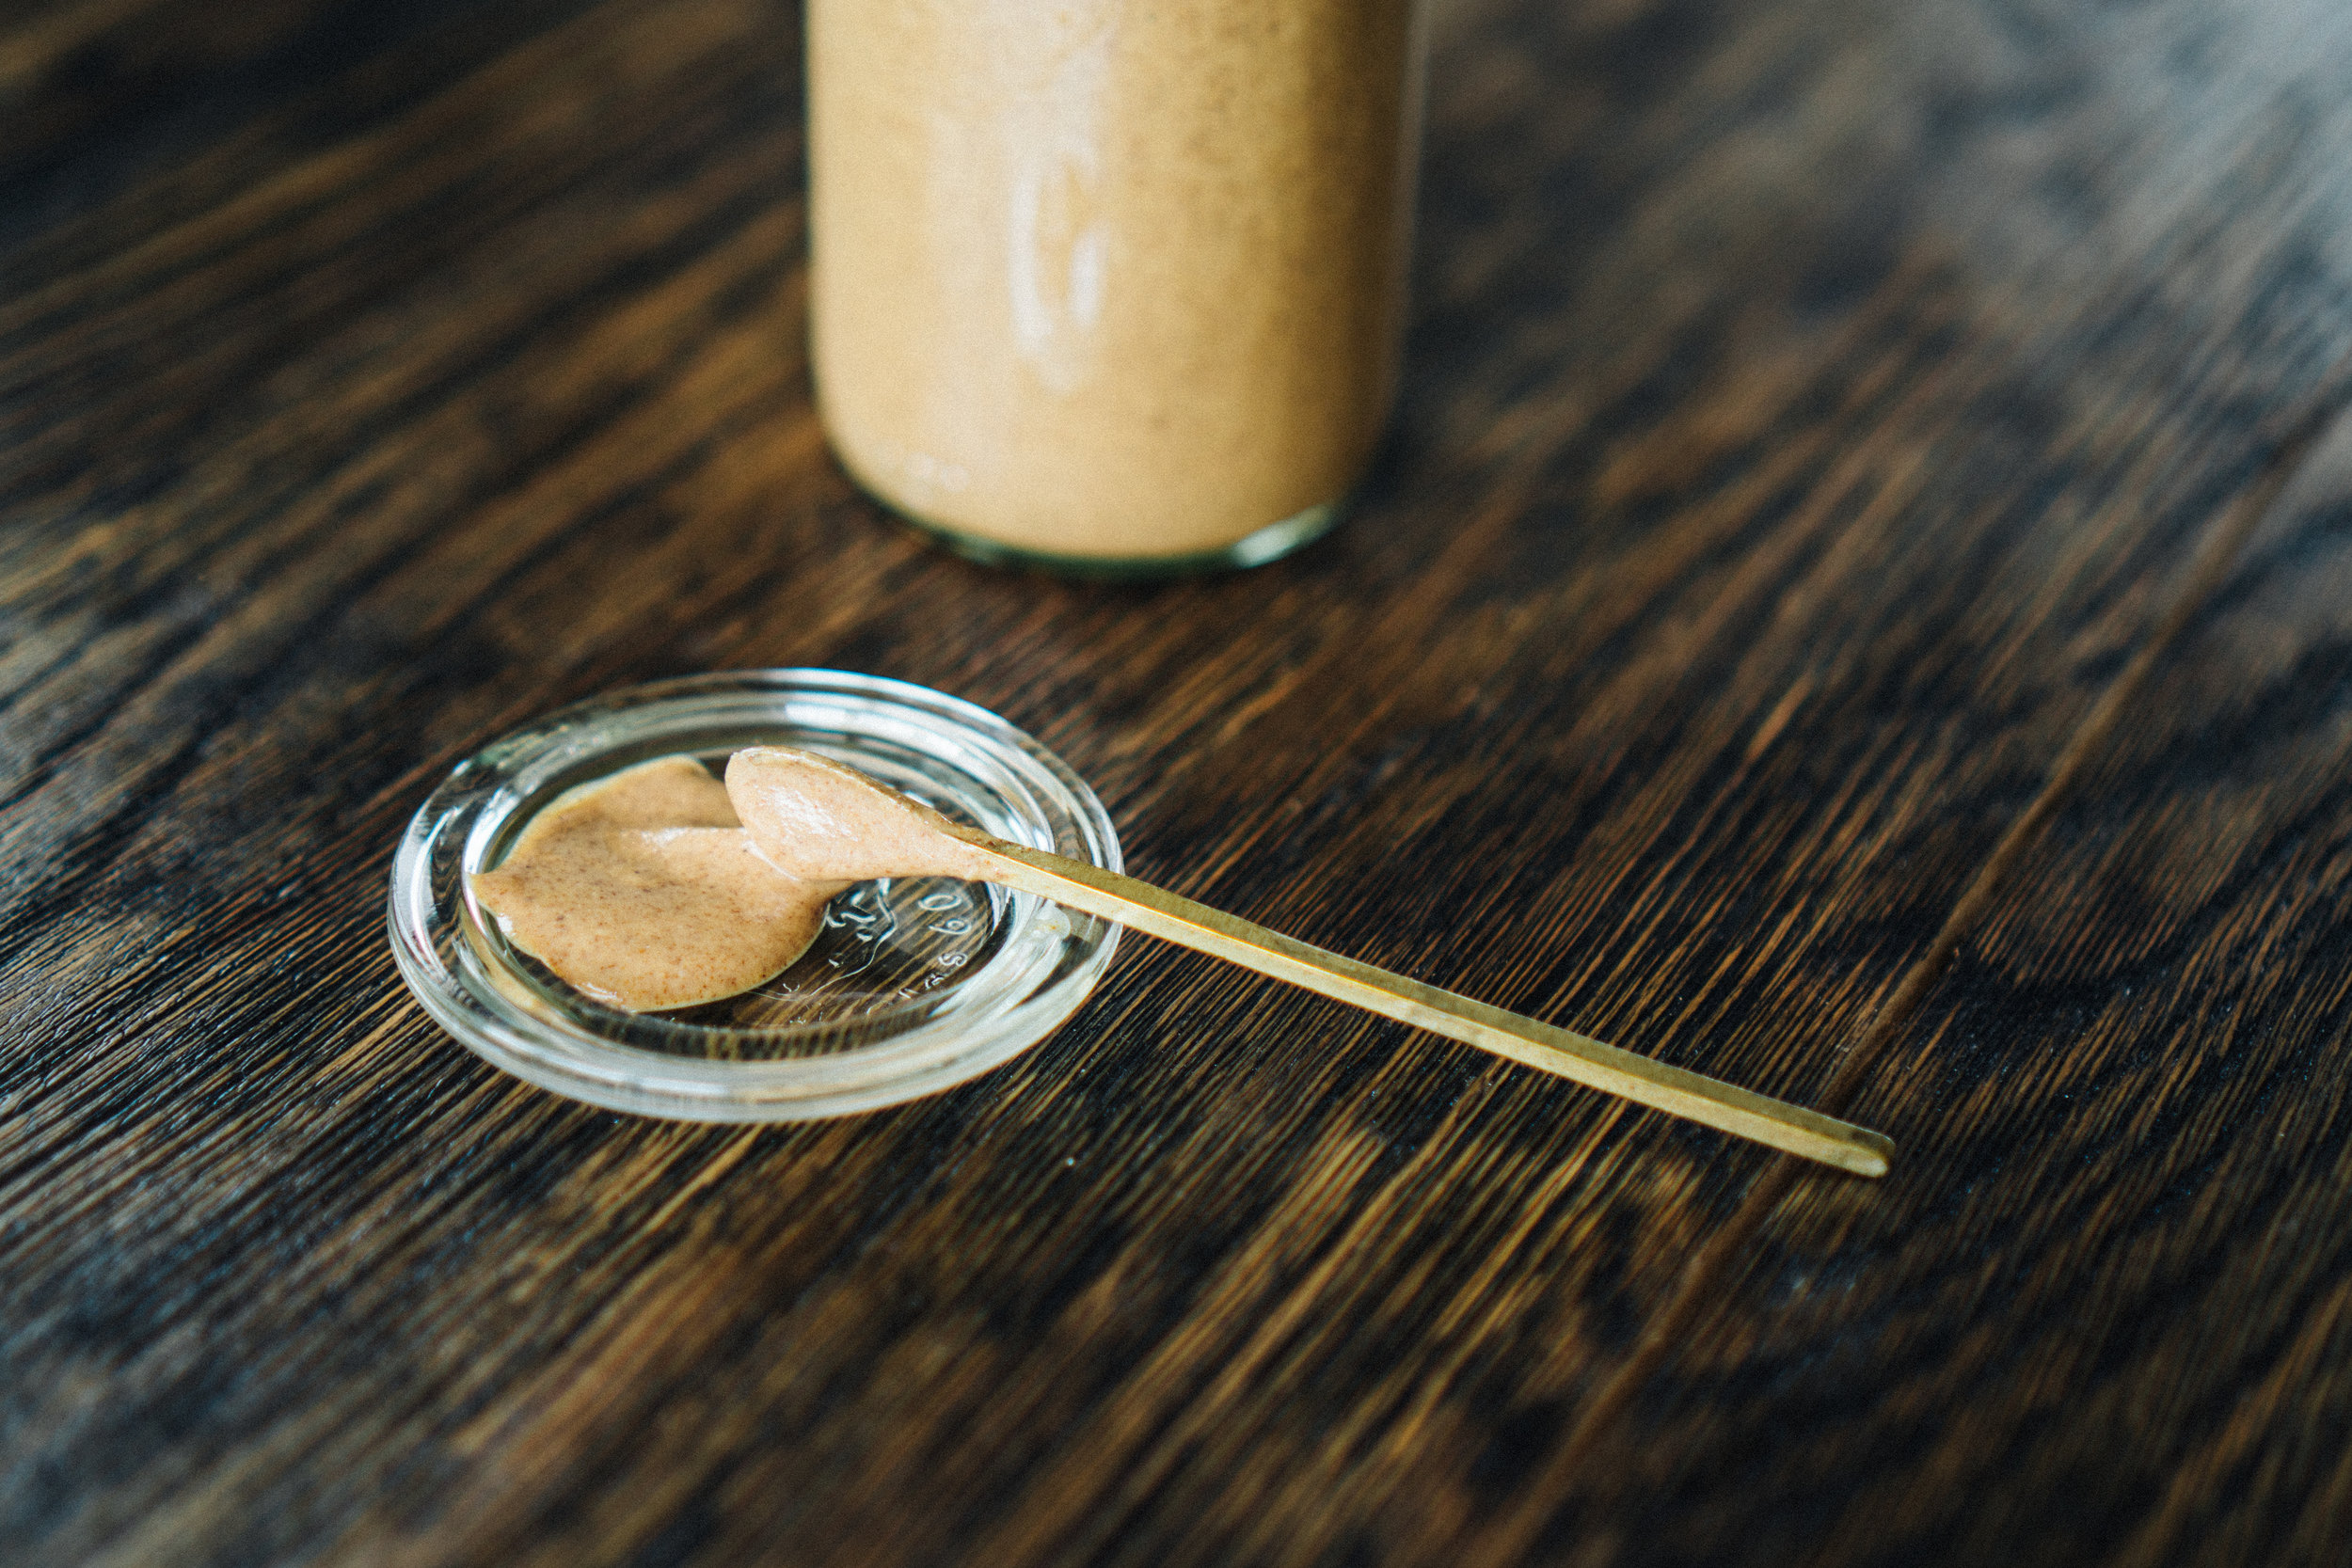 Yup, as good as almond butter can be